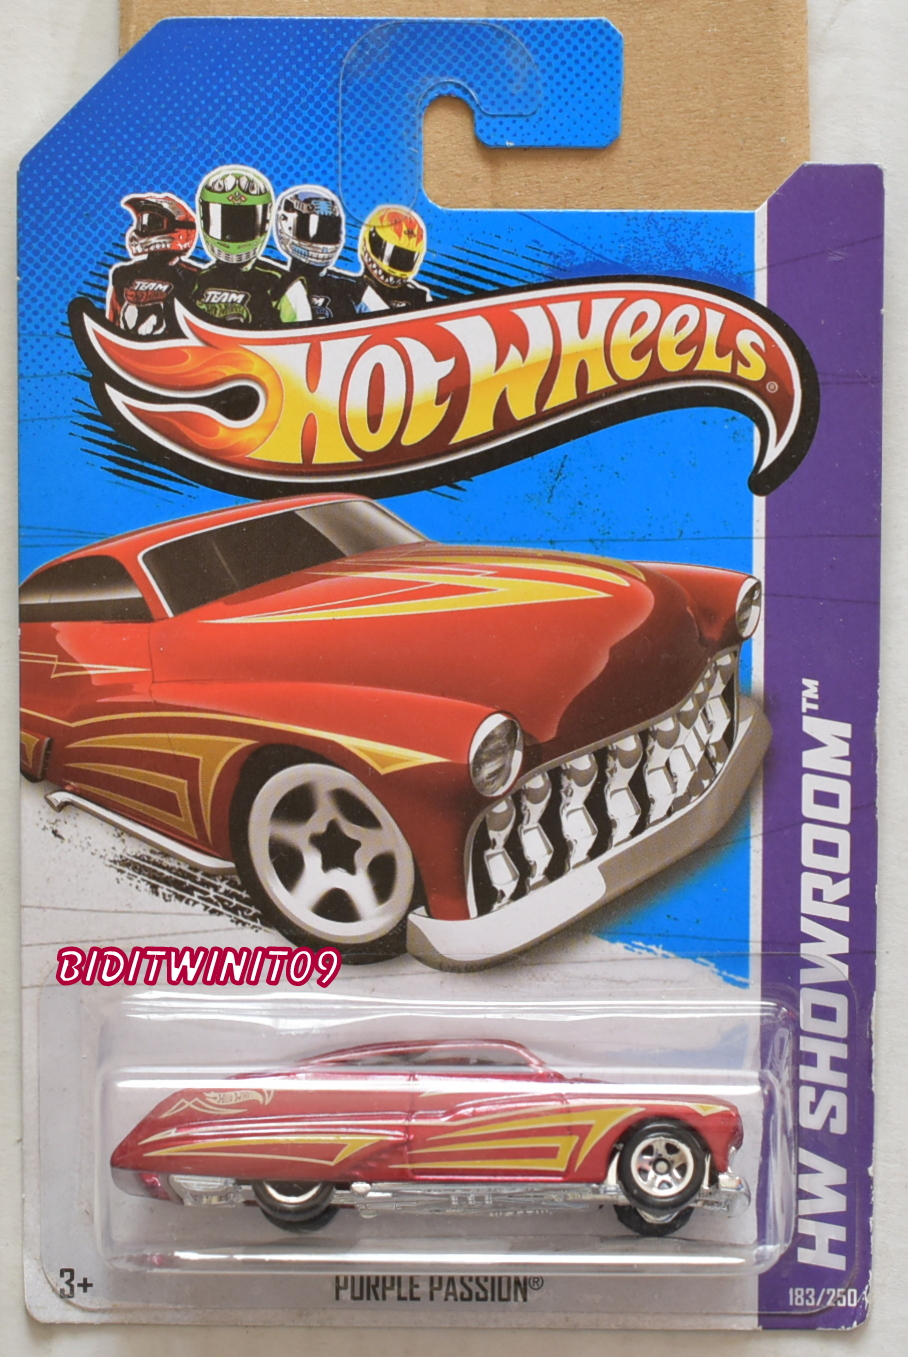 HOT WHEELS 2013 HW SHOWROOM - AMERICAN TURBO PURPLE PASSION RED